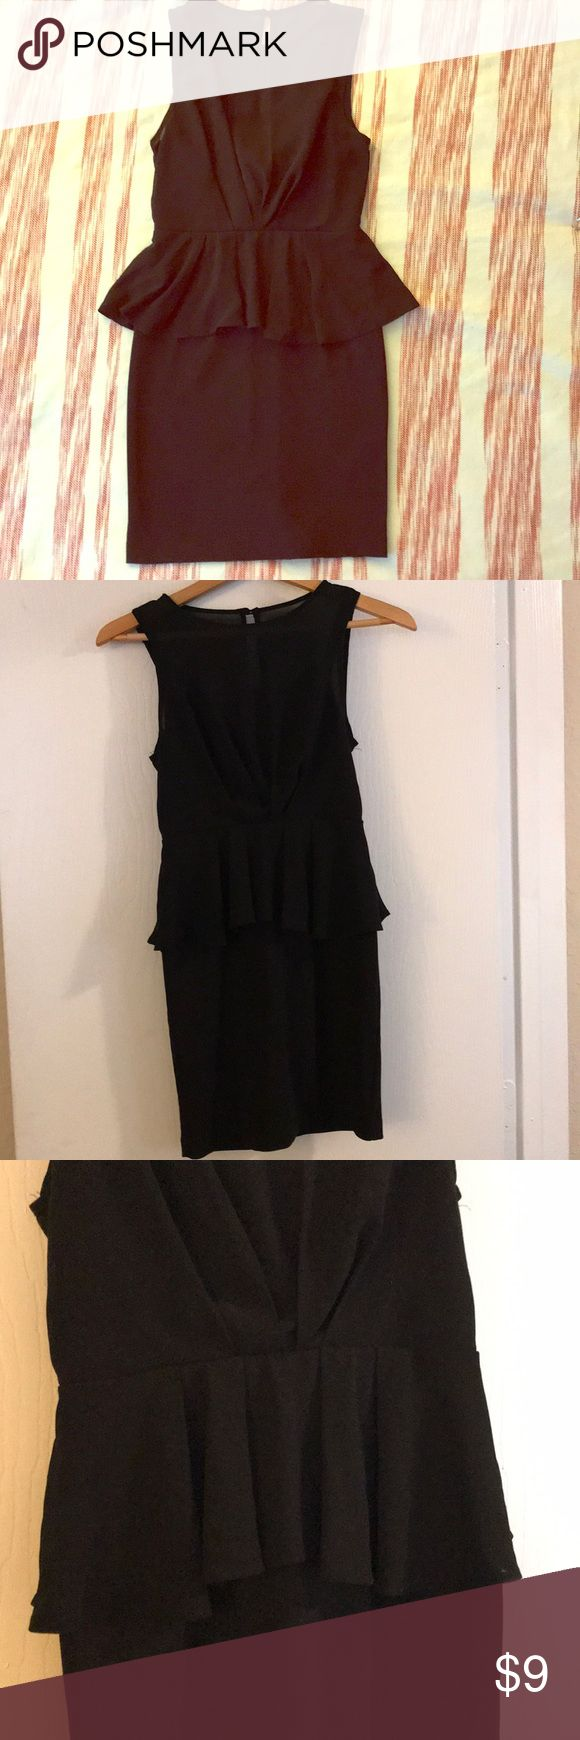 ⭐️Another Little Black Dress⭐️ ⭐️This little black dress is from Forever 21. This little sleeveless number has been gently worn, but is in great shape. It's fitted with a ruffle around the middle and a zipper up the back with one button⭐️ Forever 21 Dresses Mini